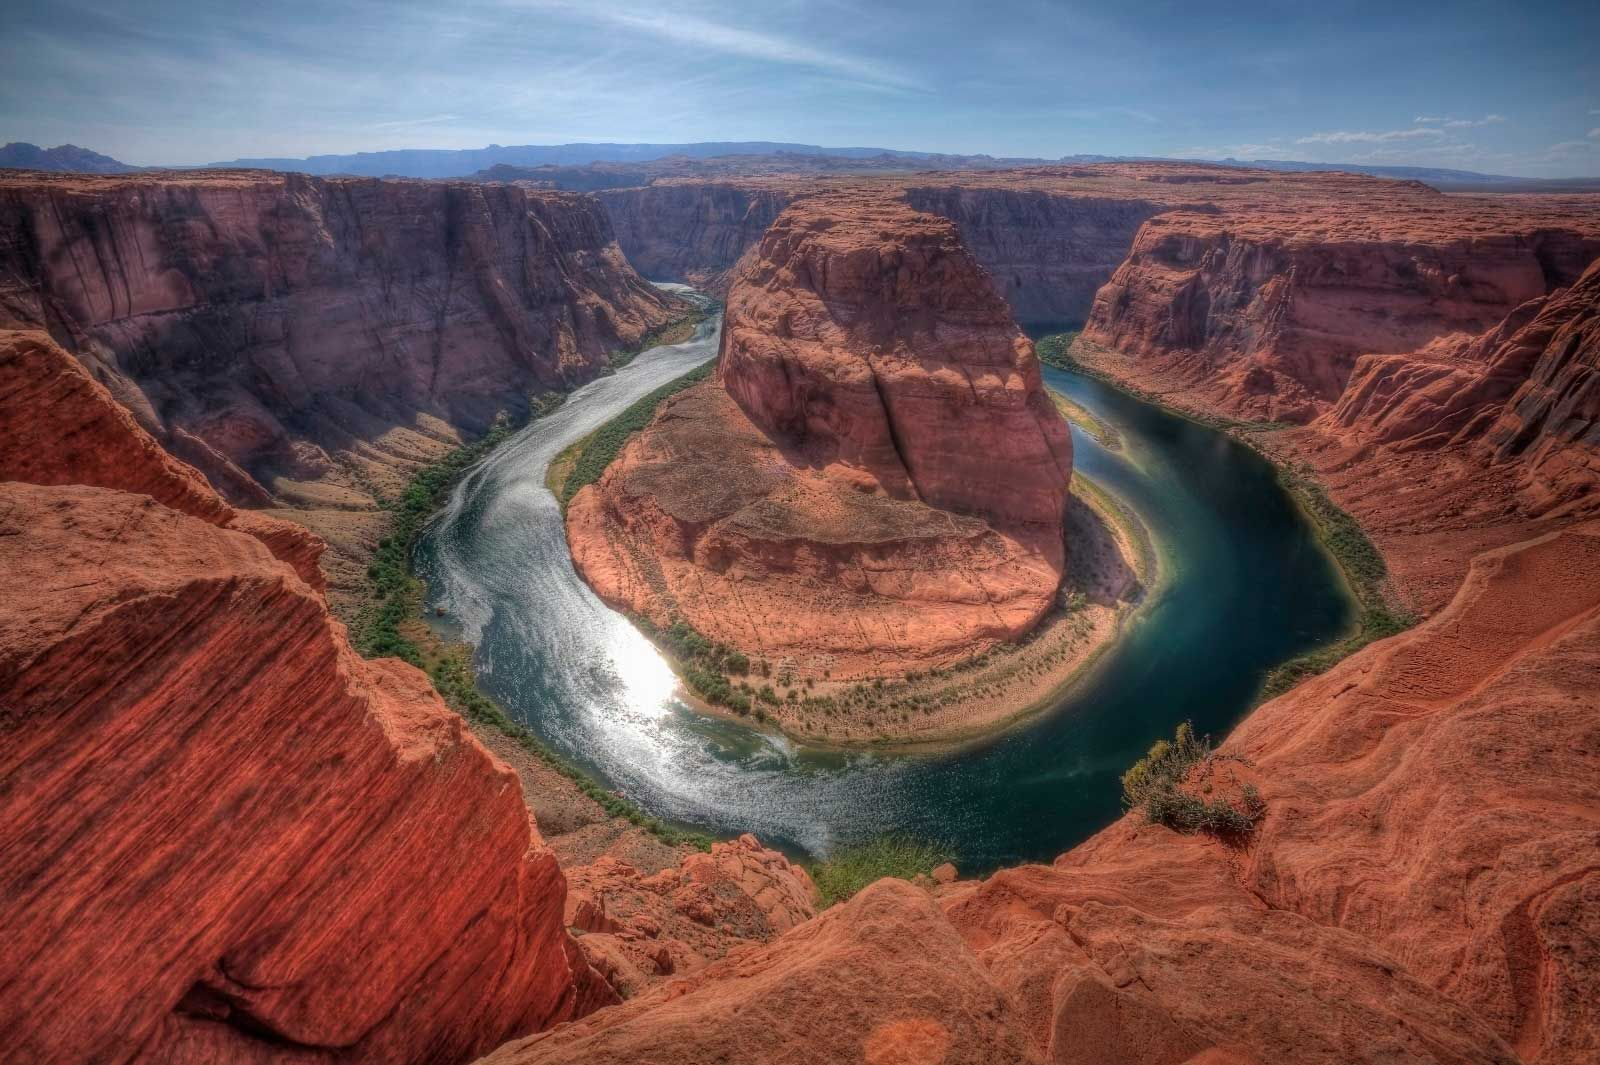 Horseshoe Bend Kind Of Meanders Of The Colorado River In